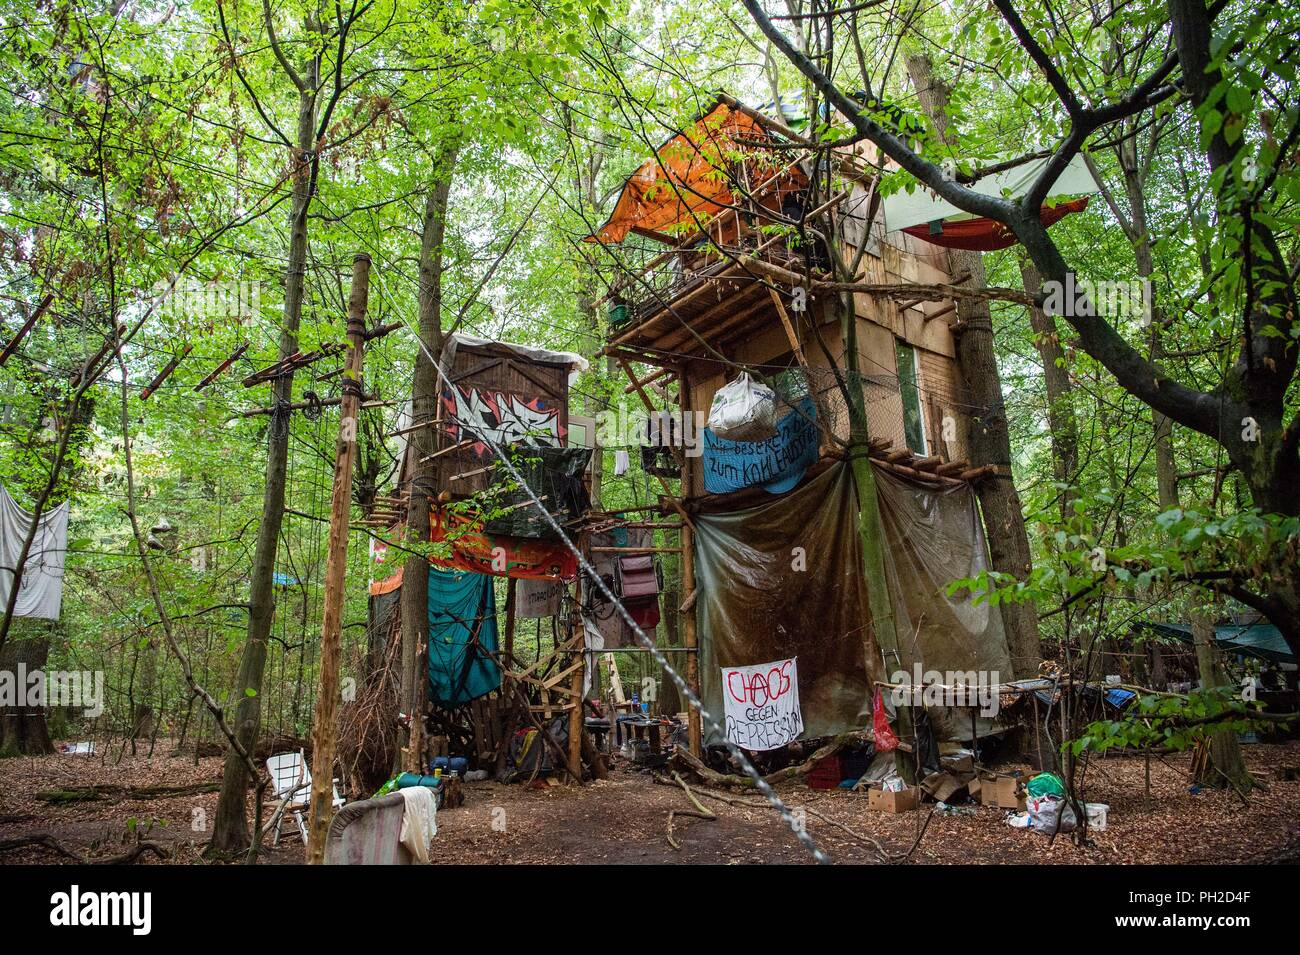 Germany, Morschenich. 29th Aug, 2018. Activists have built tree houses in the Hambach Forest. The camp will demonstrate against the clearing of the Hambach forest for opencast lignite mining. North Rhine-Westphalia's Prime Minister Laschet (CDU) will be asking the press questions on current political issues on 30.09.2018. In the centre is probably the heated location in the Hambach Forest. Credit: Christophe Gateau/dpa/Alamy Live News - Stock Image